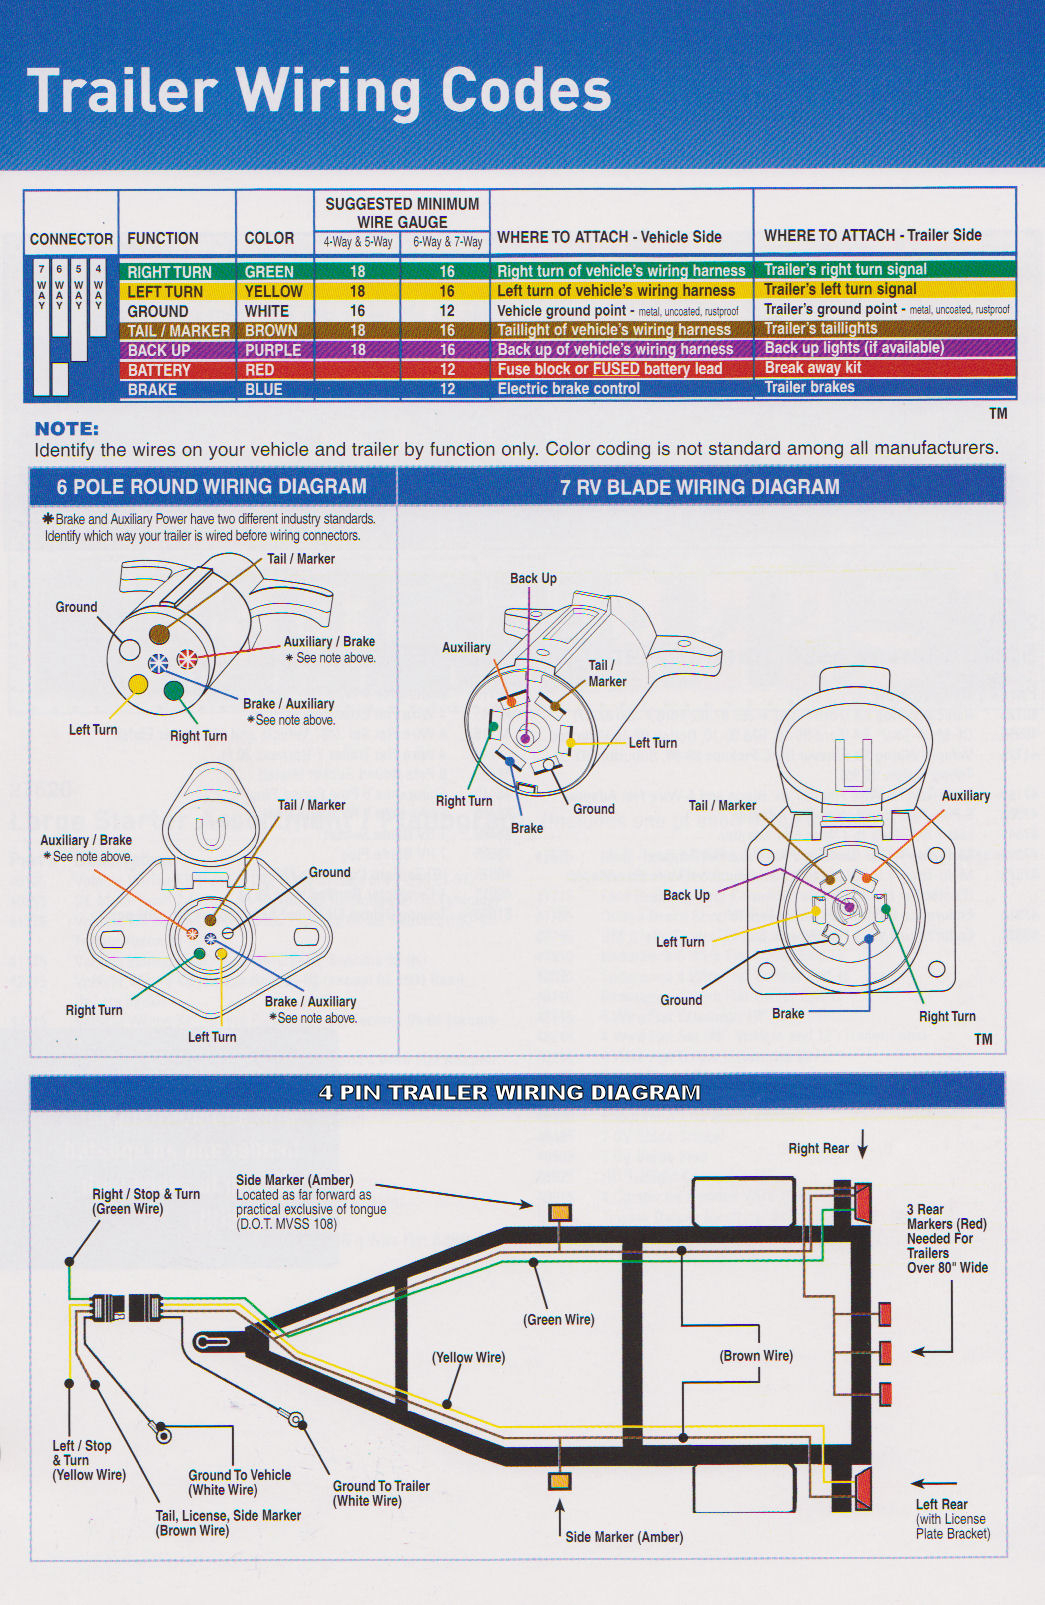 Trailer Wiring Diagram | Trailers In Denver Co | Denver Co Trailer - Wiring Diagram For A Trailer